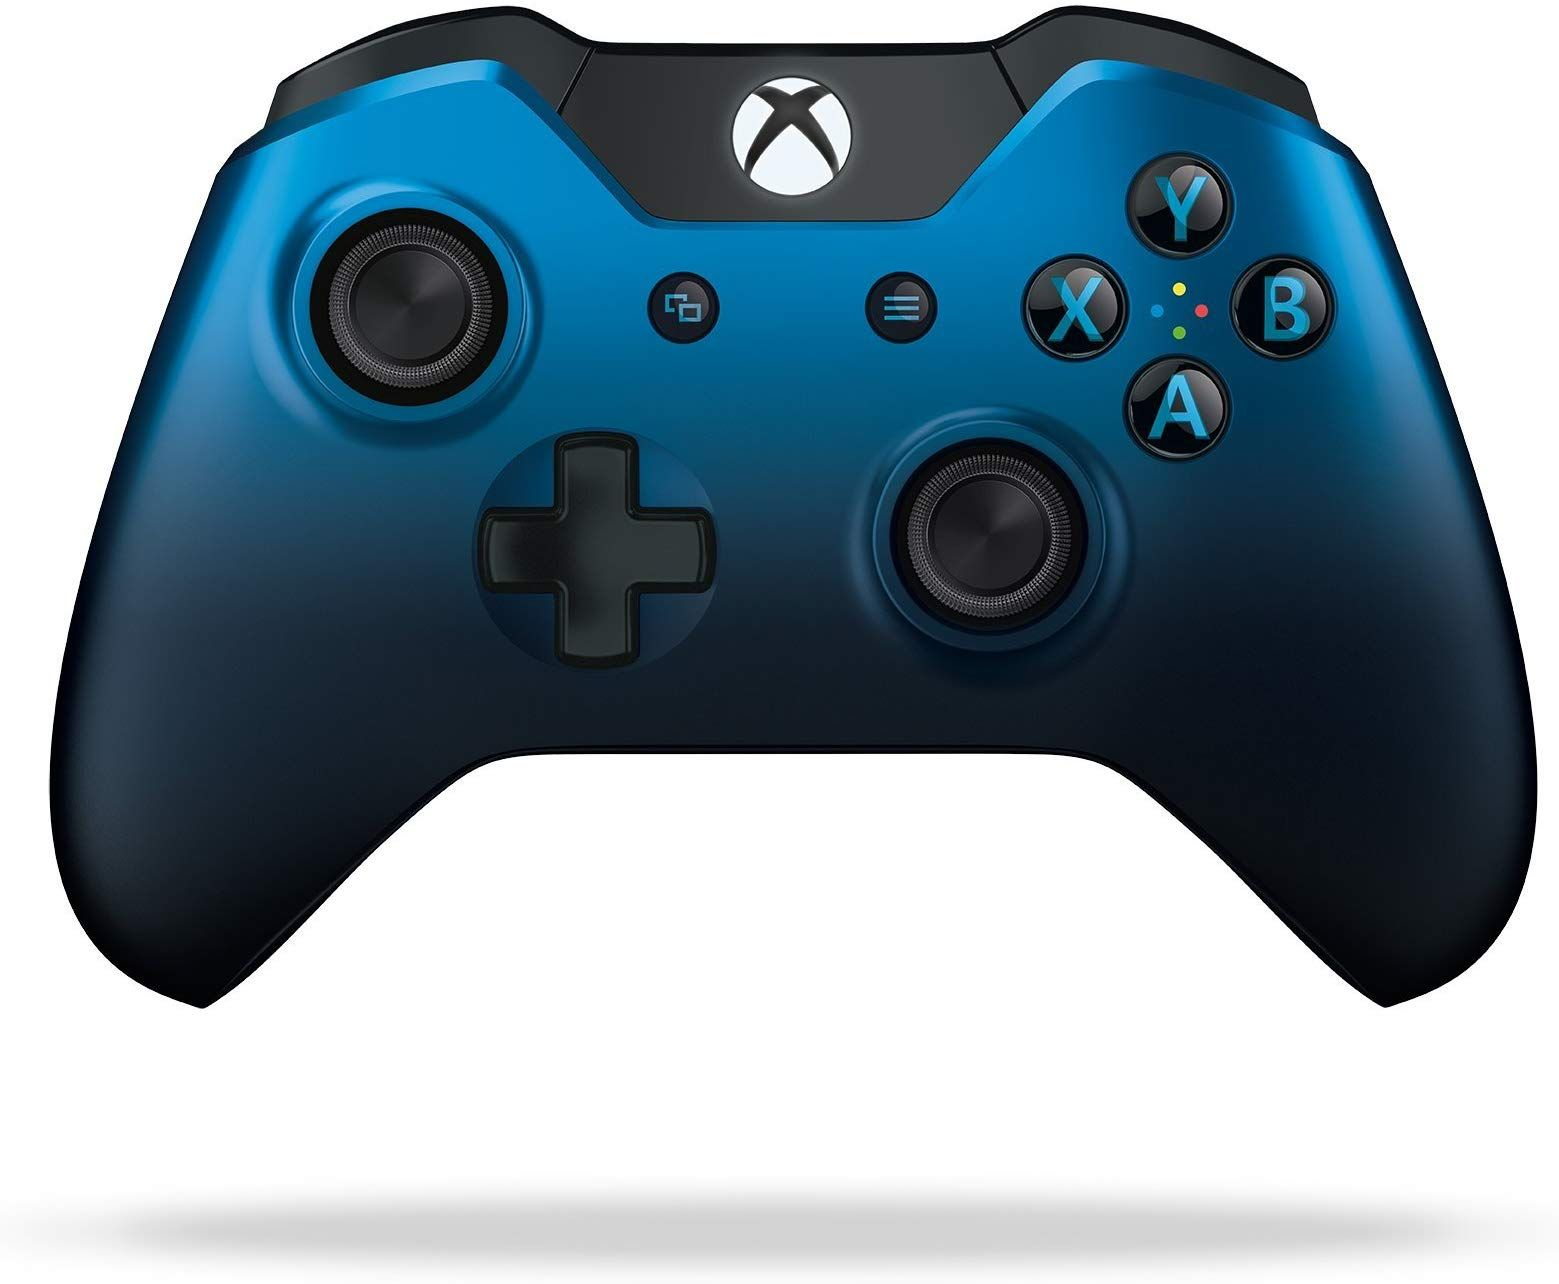 Xbox One Special Edition Dusk Shadow Wireless Controller Without Bluetooth Review Xbox Wireless Controller Xbox One Xbox One Games